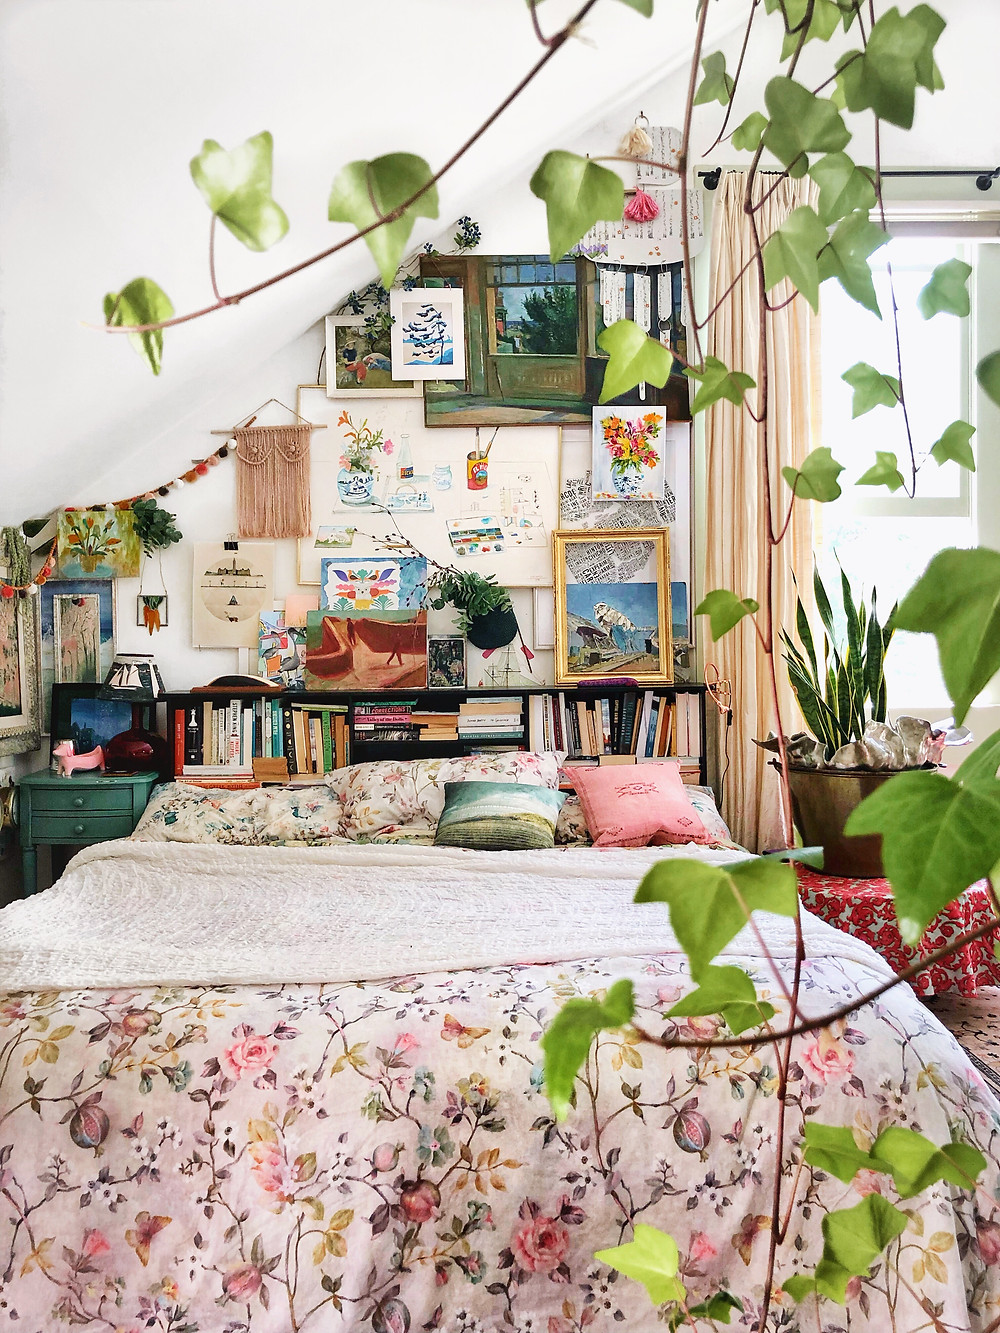 Layered gallery wall over bed with plants and floral bedding